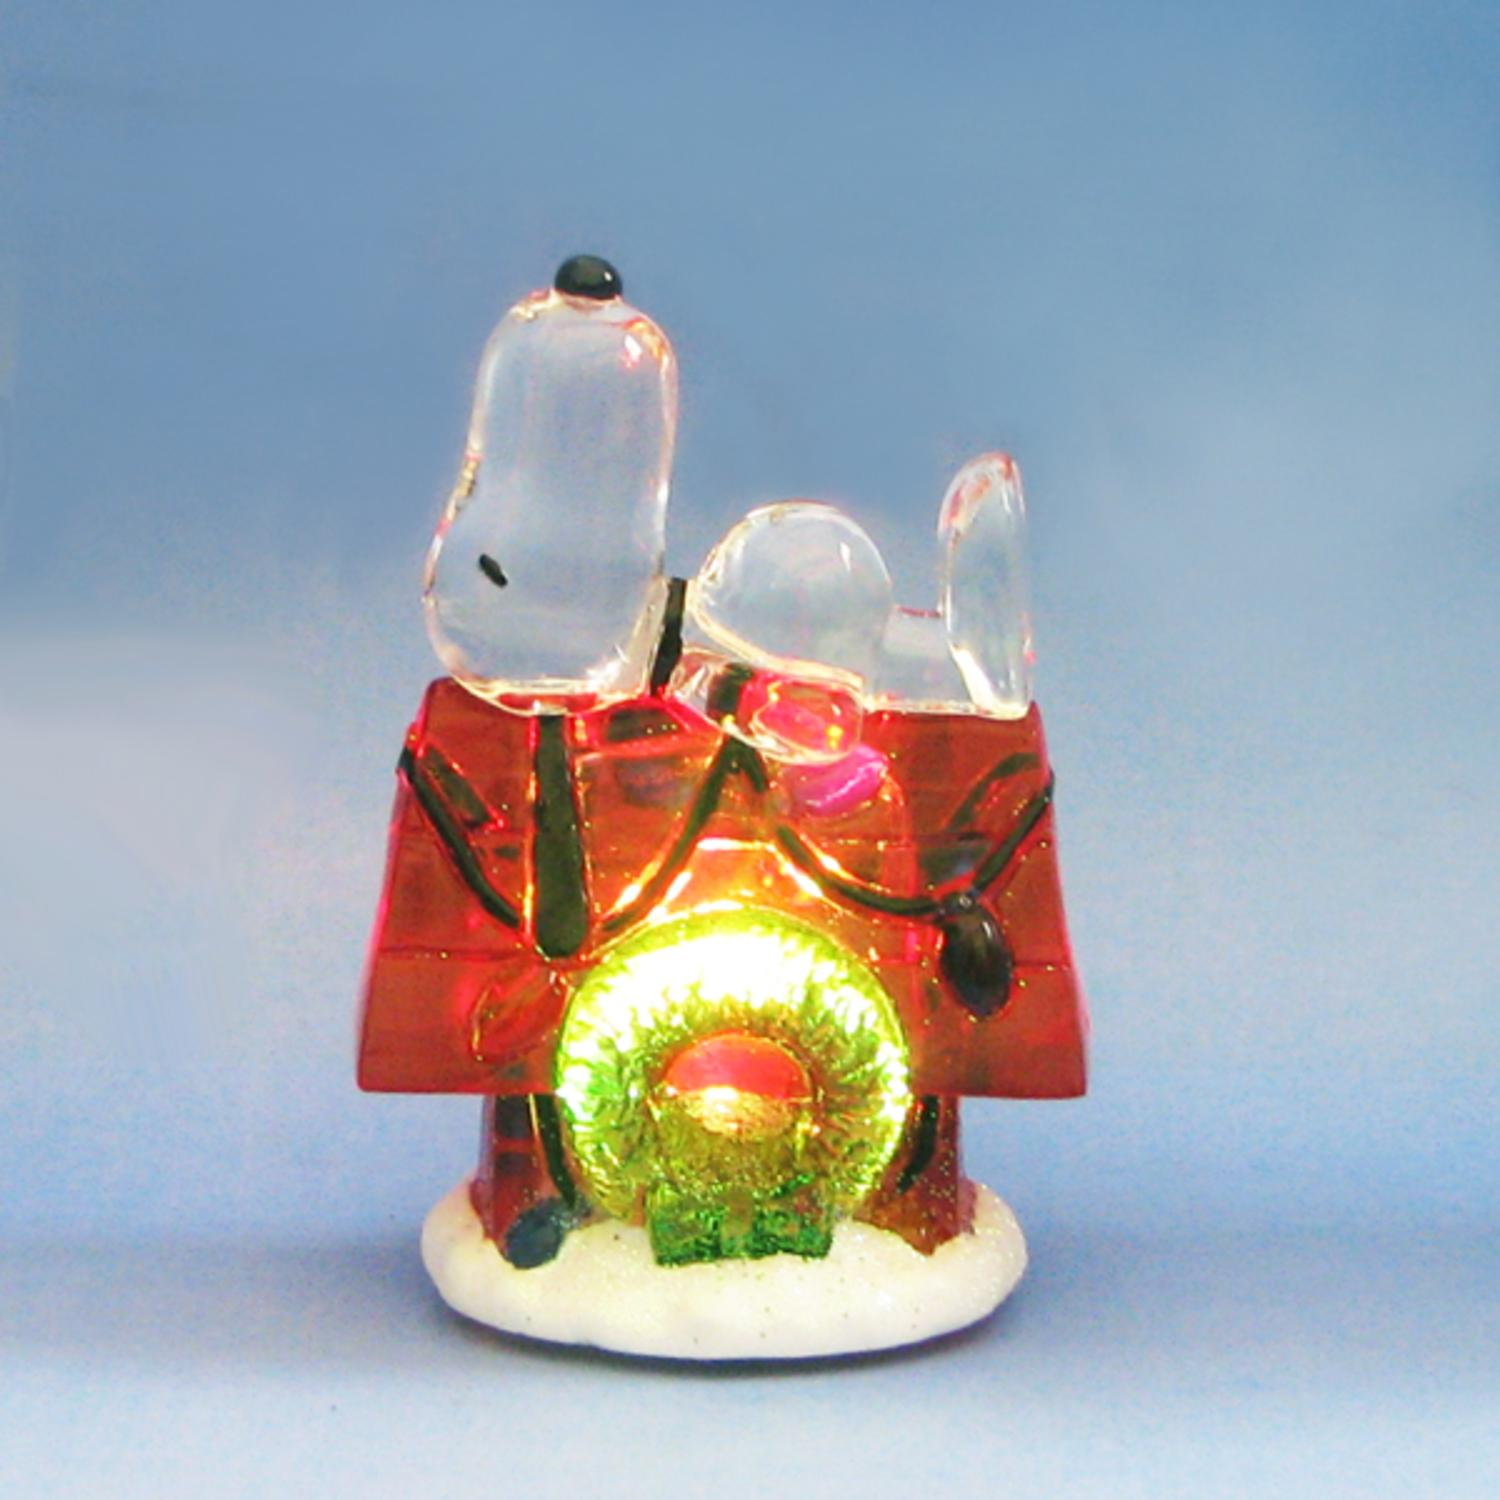 Pack of 6 LED Lighted Peanuts Snoopy on Doghouse Christmas Table Decorations 3